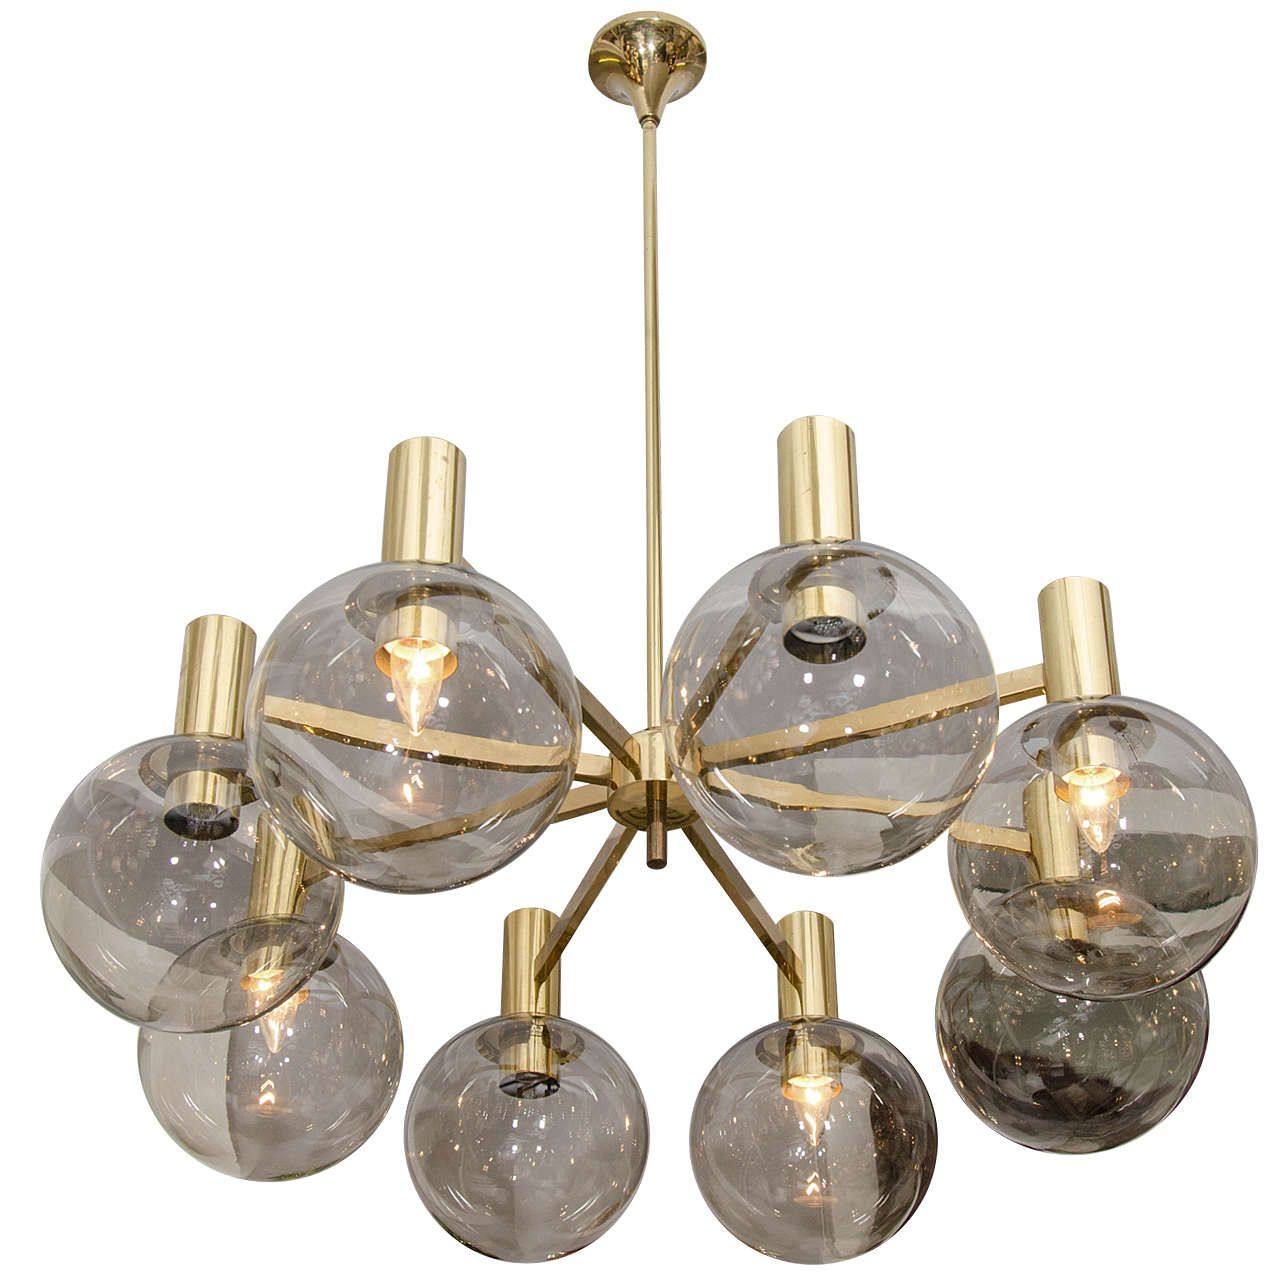 Hans Agne Jakobson Smoke Glass Globe and Brass Chandelier | From a unique collection of antique and modern chandeliers and pendants at https://www.1stdibs.com/furniture/lighting/chandeliers-pendant-lights/